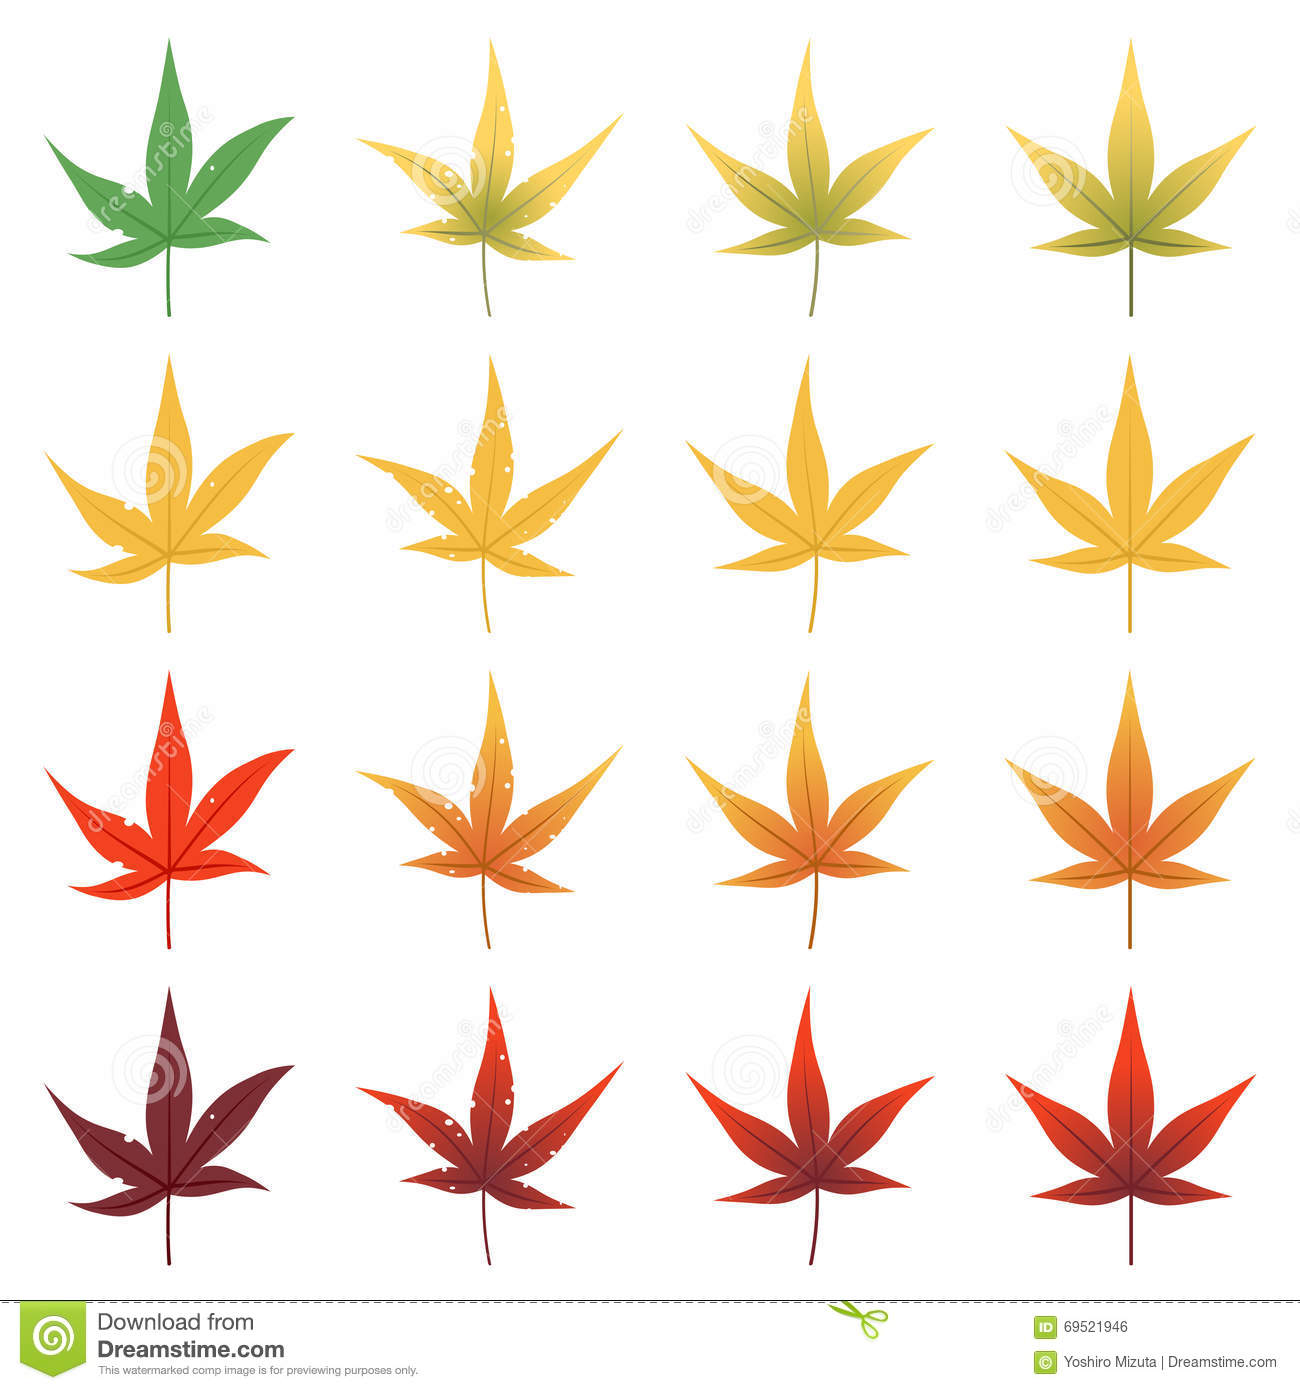 Feuilles d 39 rable du japon illustration de vecteur image 69521946 - Feuille erable du japon ...